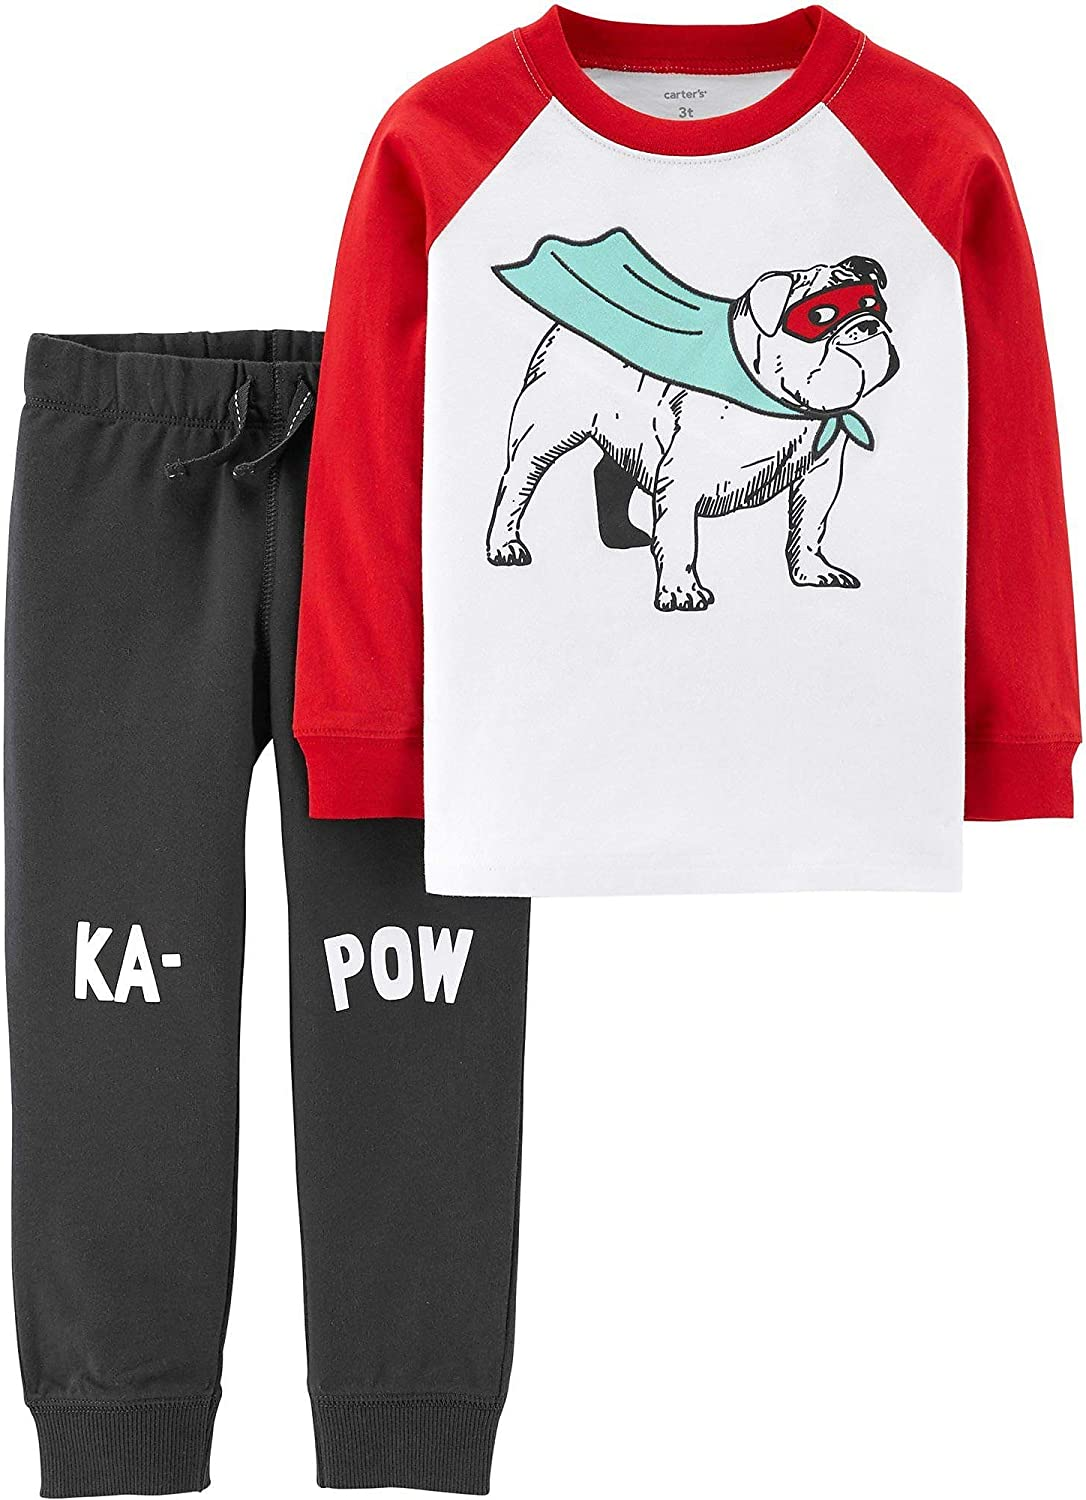 Carters Baby Boys Super Hero Dog Jogger Pants Set 12 Months Ivory/Grey/red